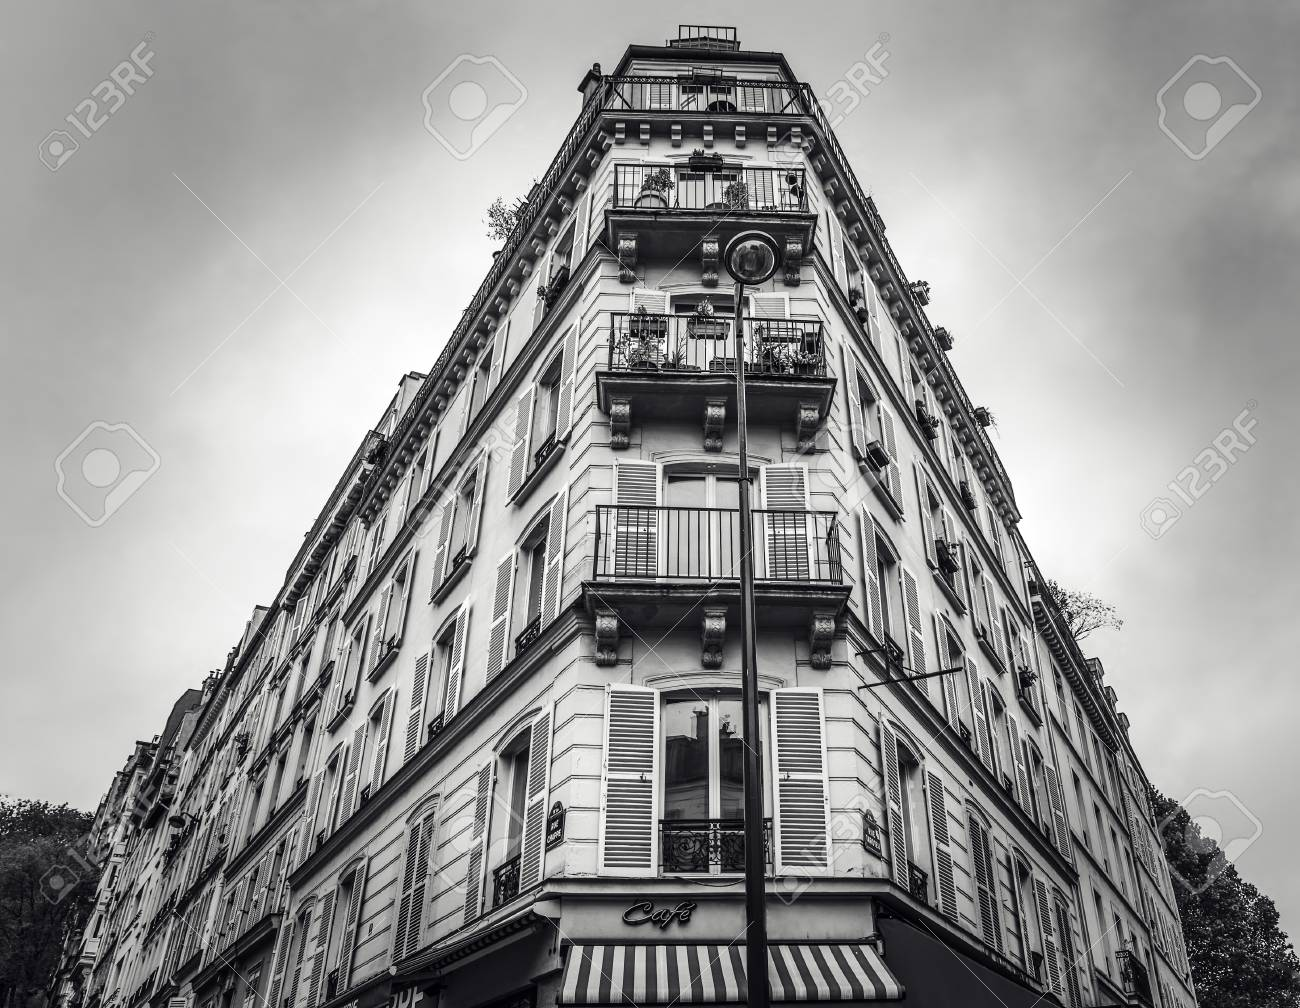 Traditional architecture of residential buildings black white photo paris france stock